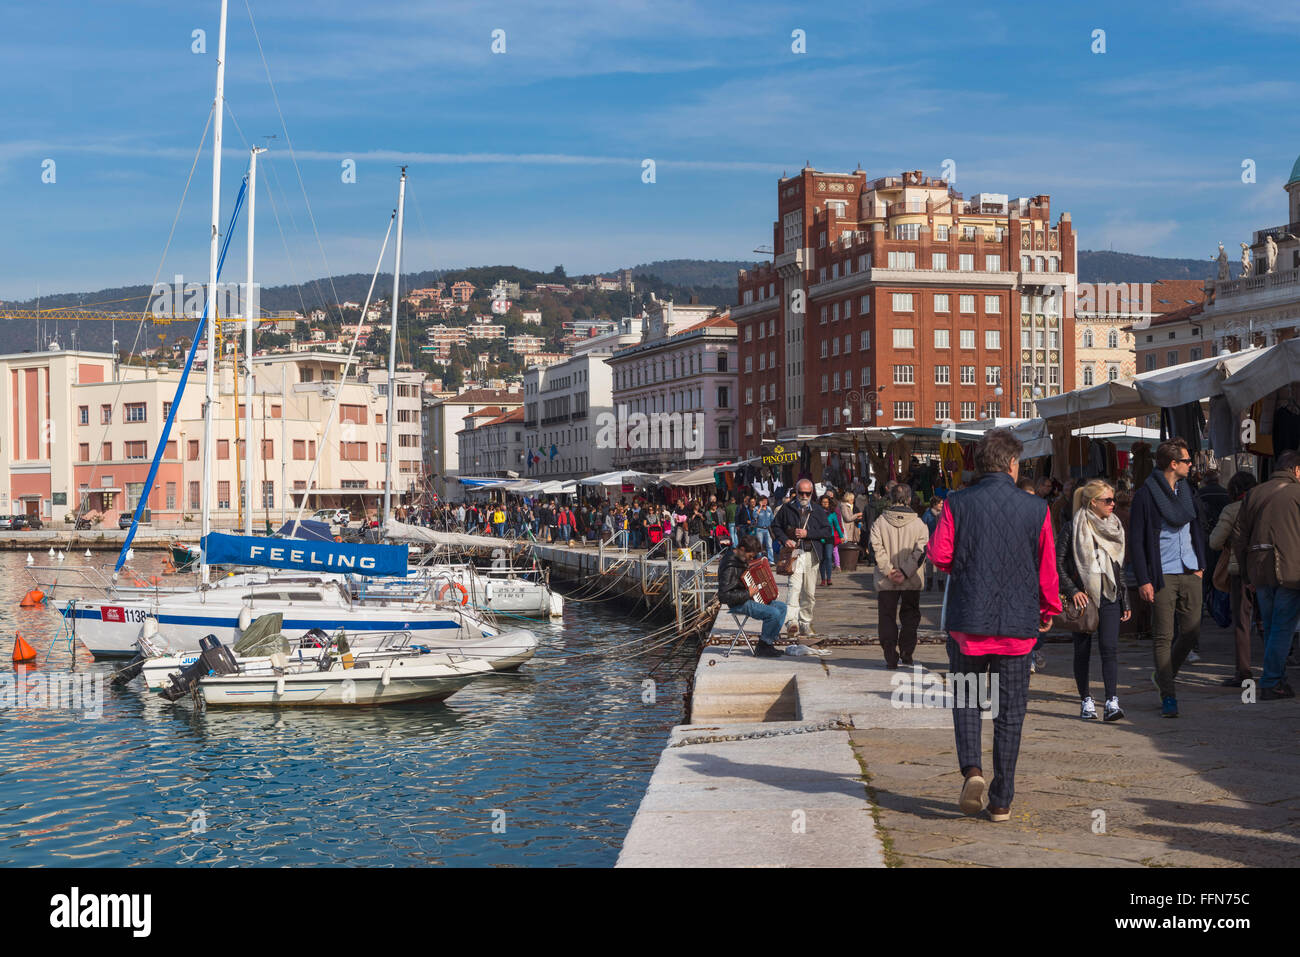 Trieste waterfront with market stalls, Trieste, Italy, Europe - Stock Image